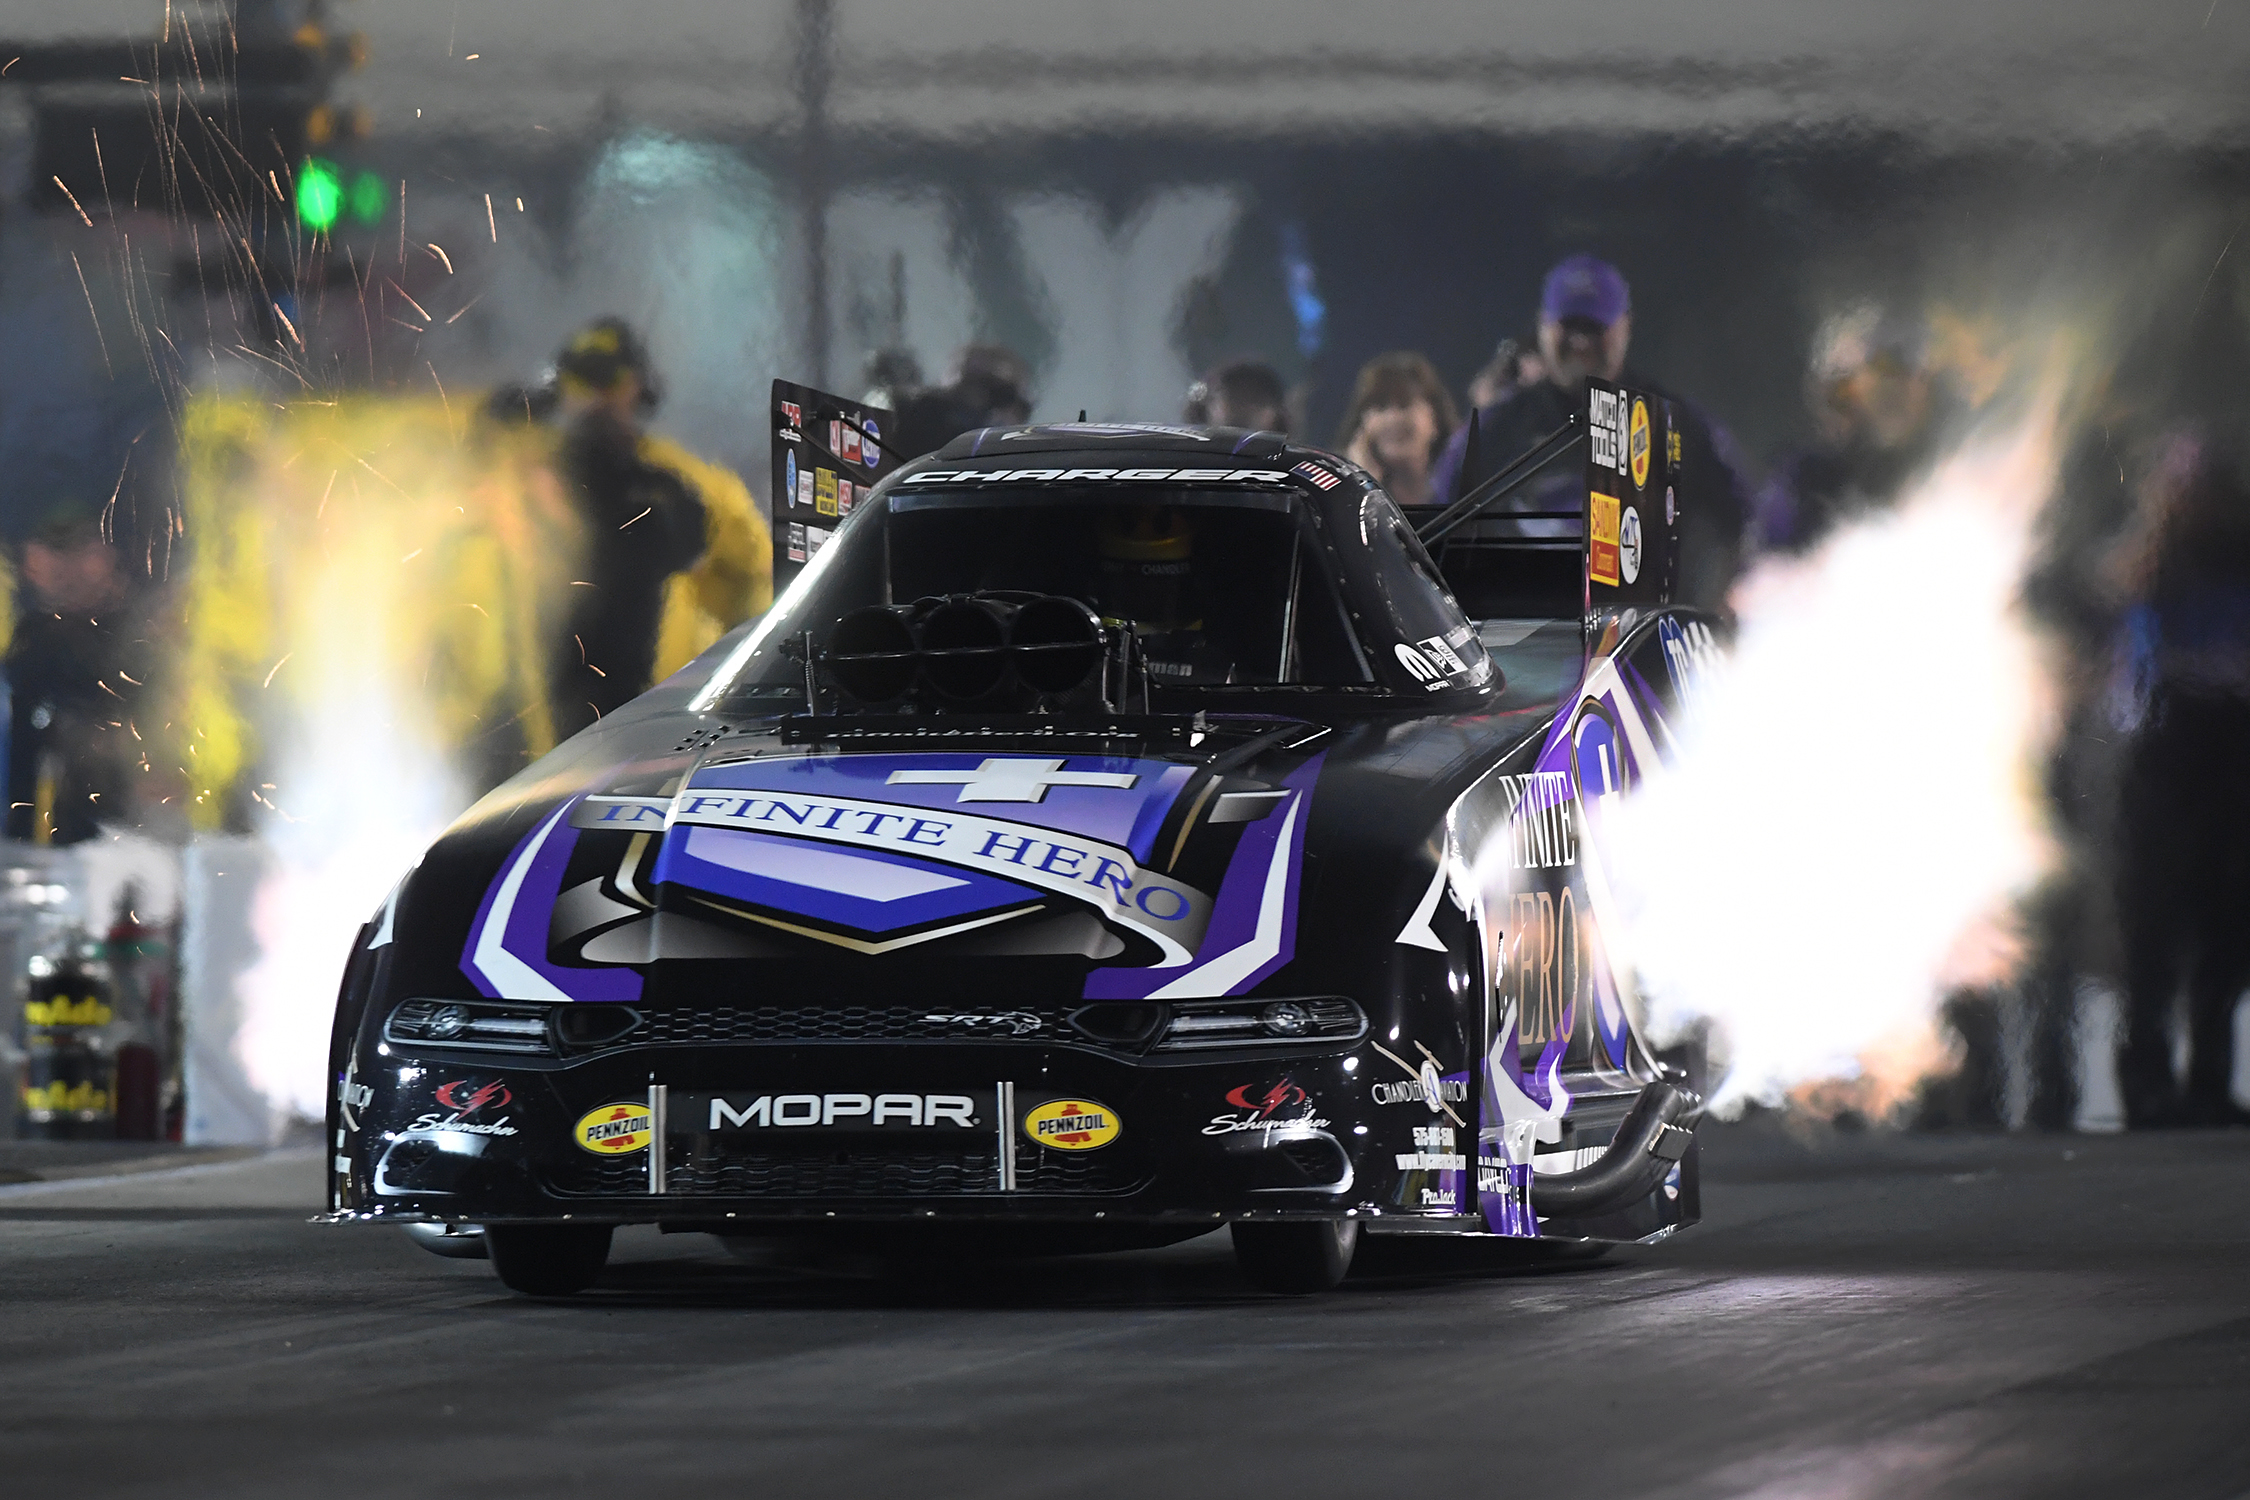 Infinite Hero Foundation pilot Jack Beckman is the provisional No. 1 qualifier in Funny Car at the 2019 NHRA Carolina Nationals